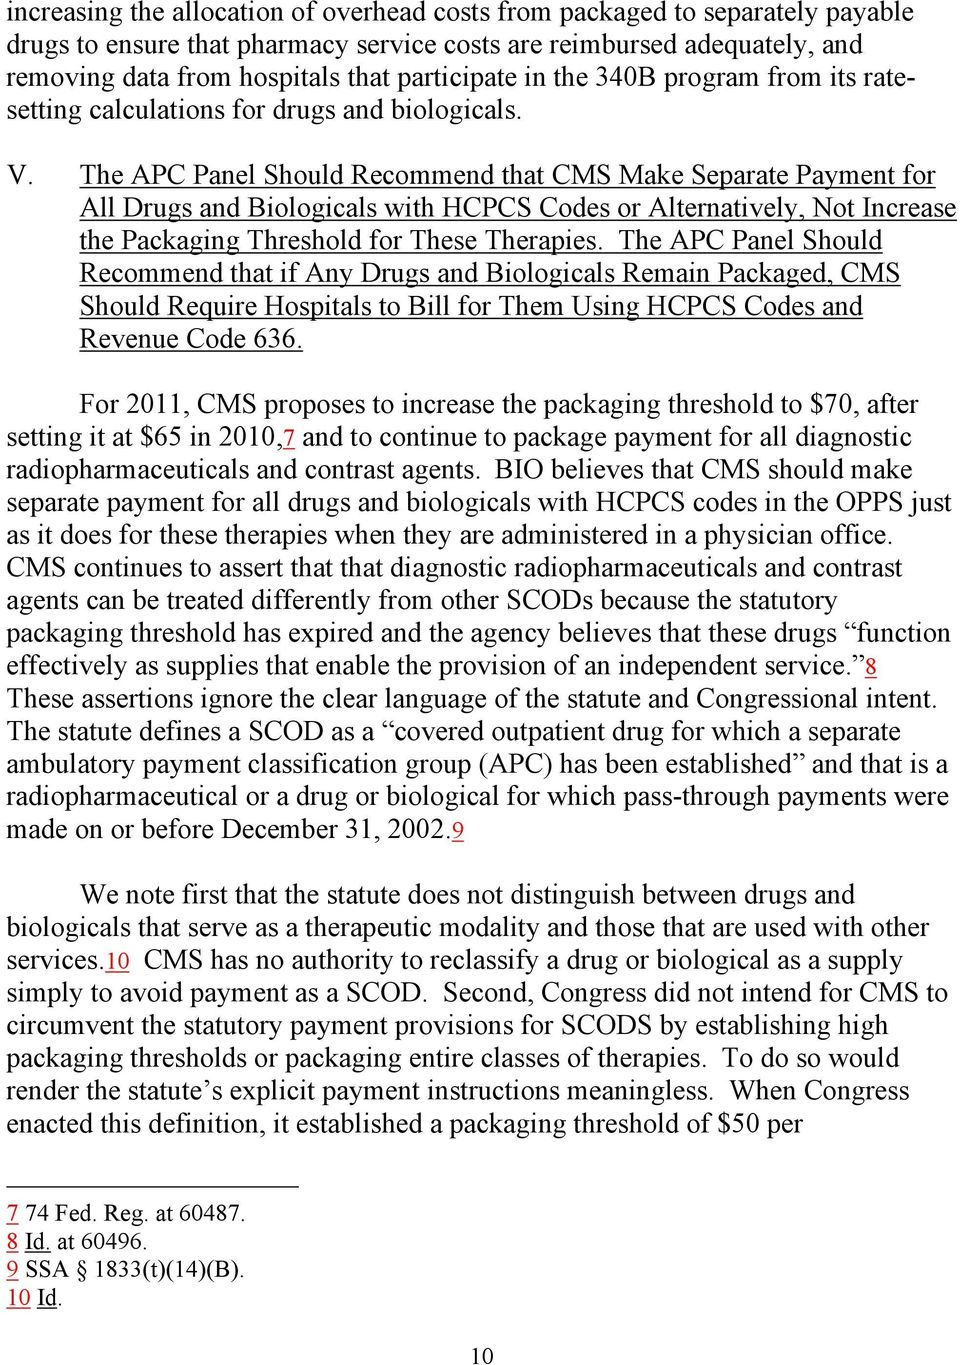 The APC Panel Should Recommend that CMS Make Separate Payment for All Drugs and Biologicals with HCPCS Codes or Alternatively, Not Increase the Packaging Threshold for These Therapies.